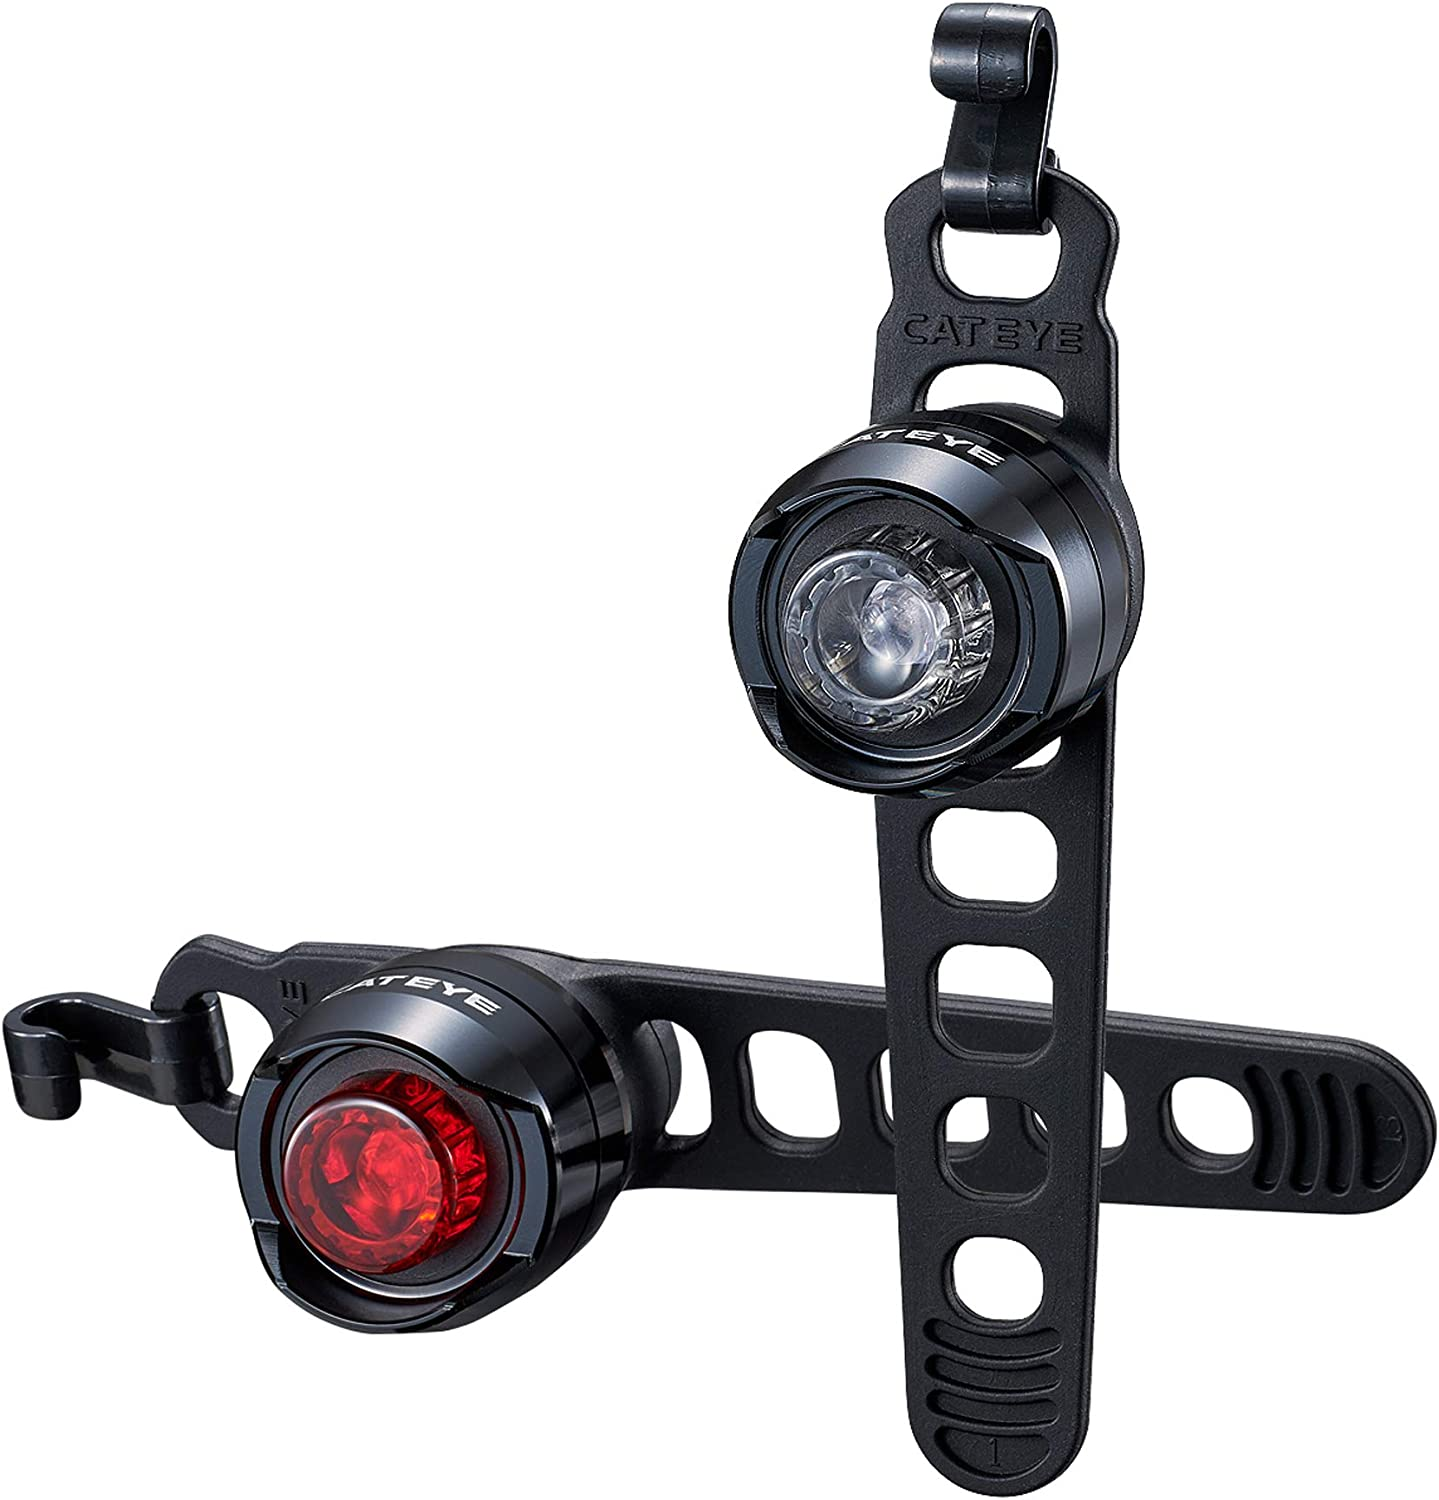 CAT EYEORB LED Bike Safety LightCommuting and Road CyclingFront and Rear Combo, Black